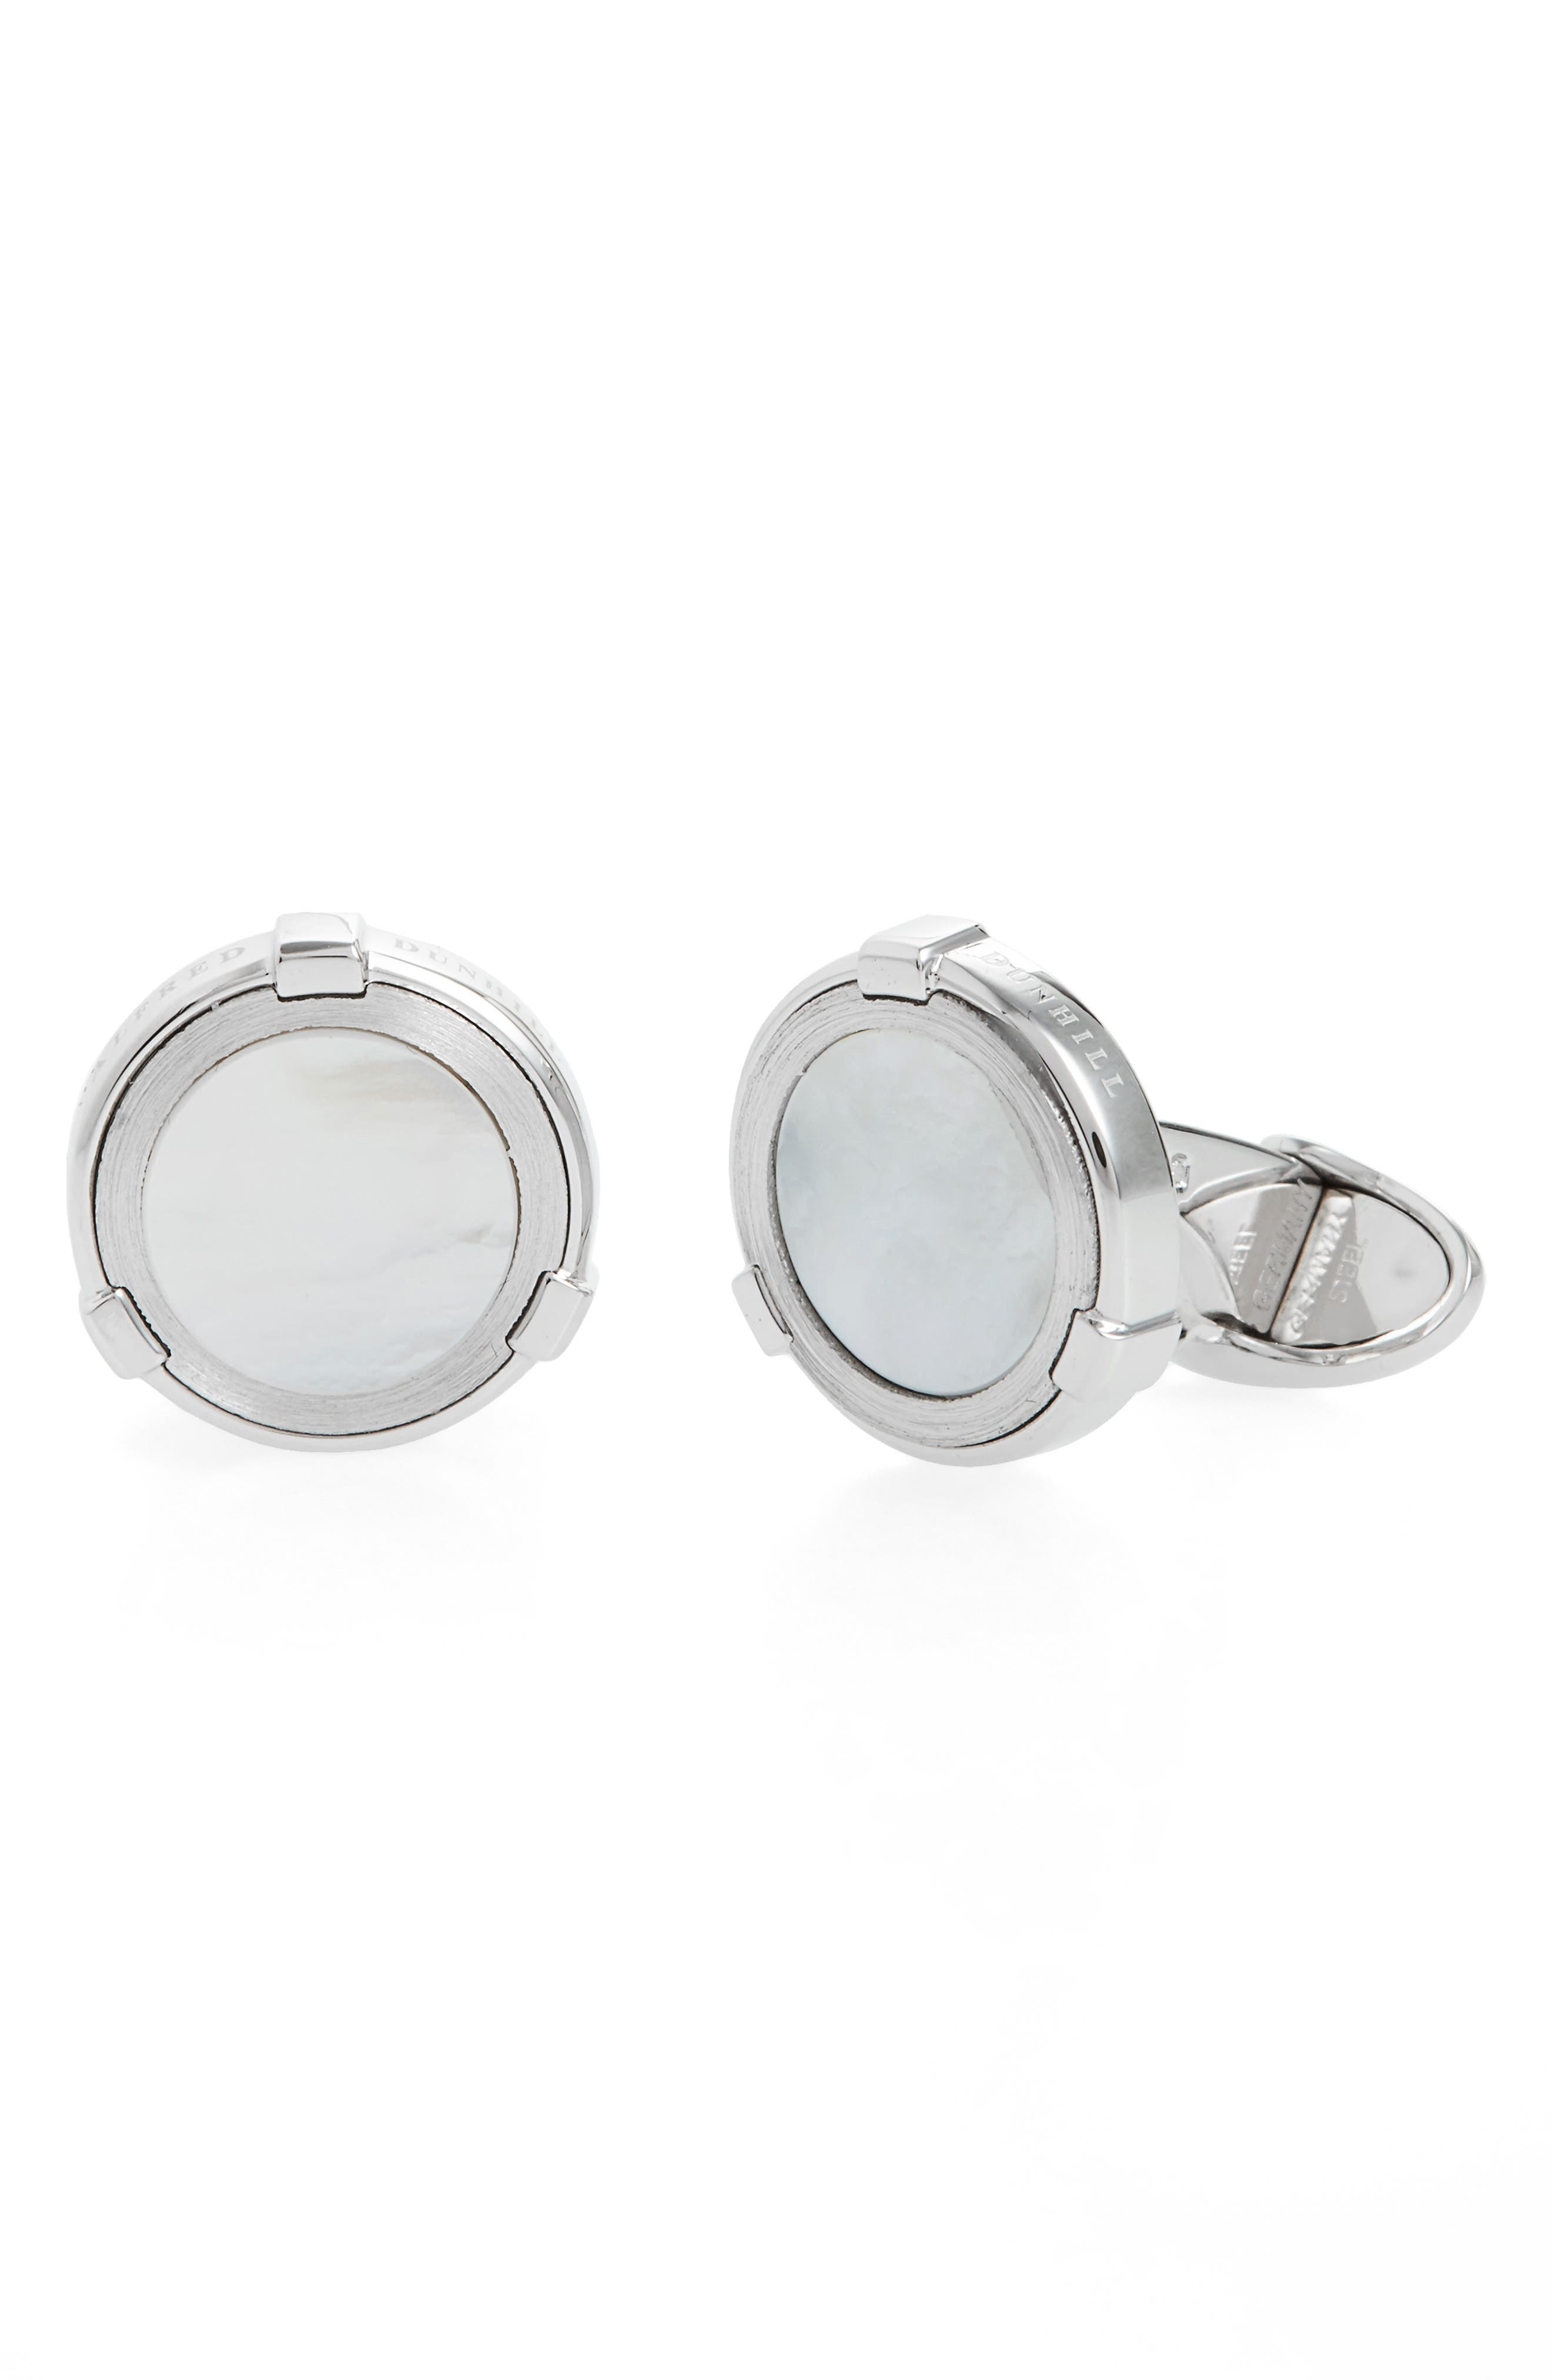 Latch Cuff Links,                             Main thumbnail 1, color,                             040